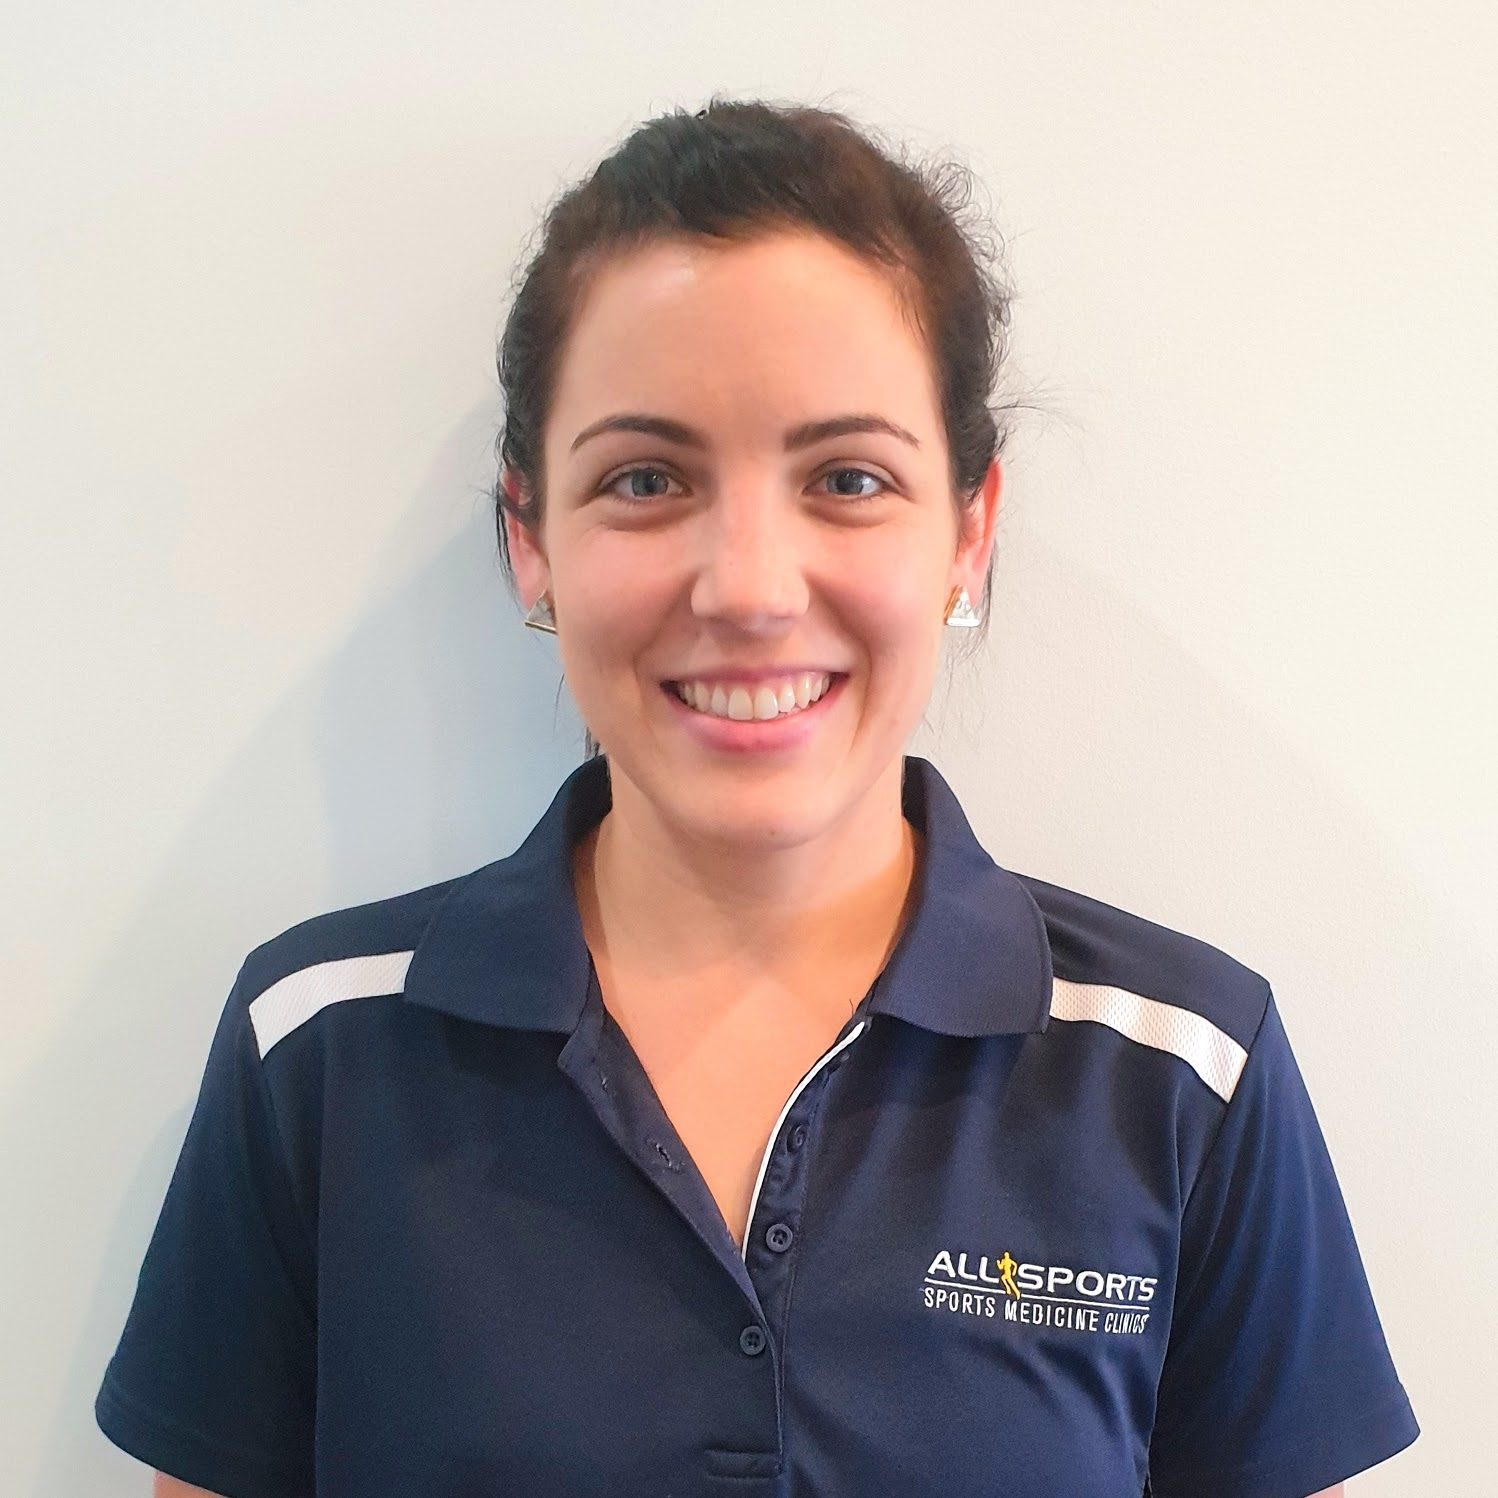 Kylie Garlick - Allsports Physiotherapy Physiotherapist